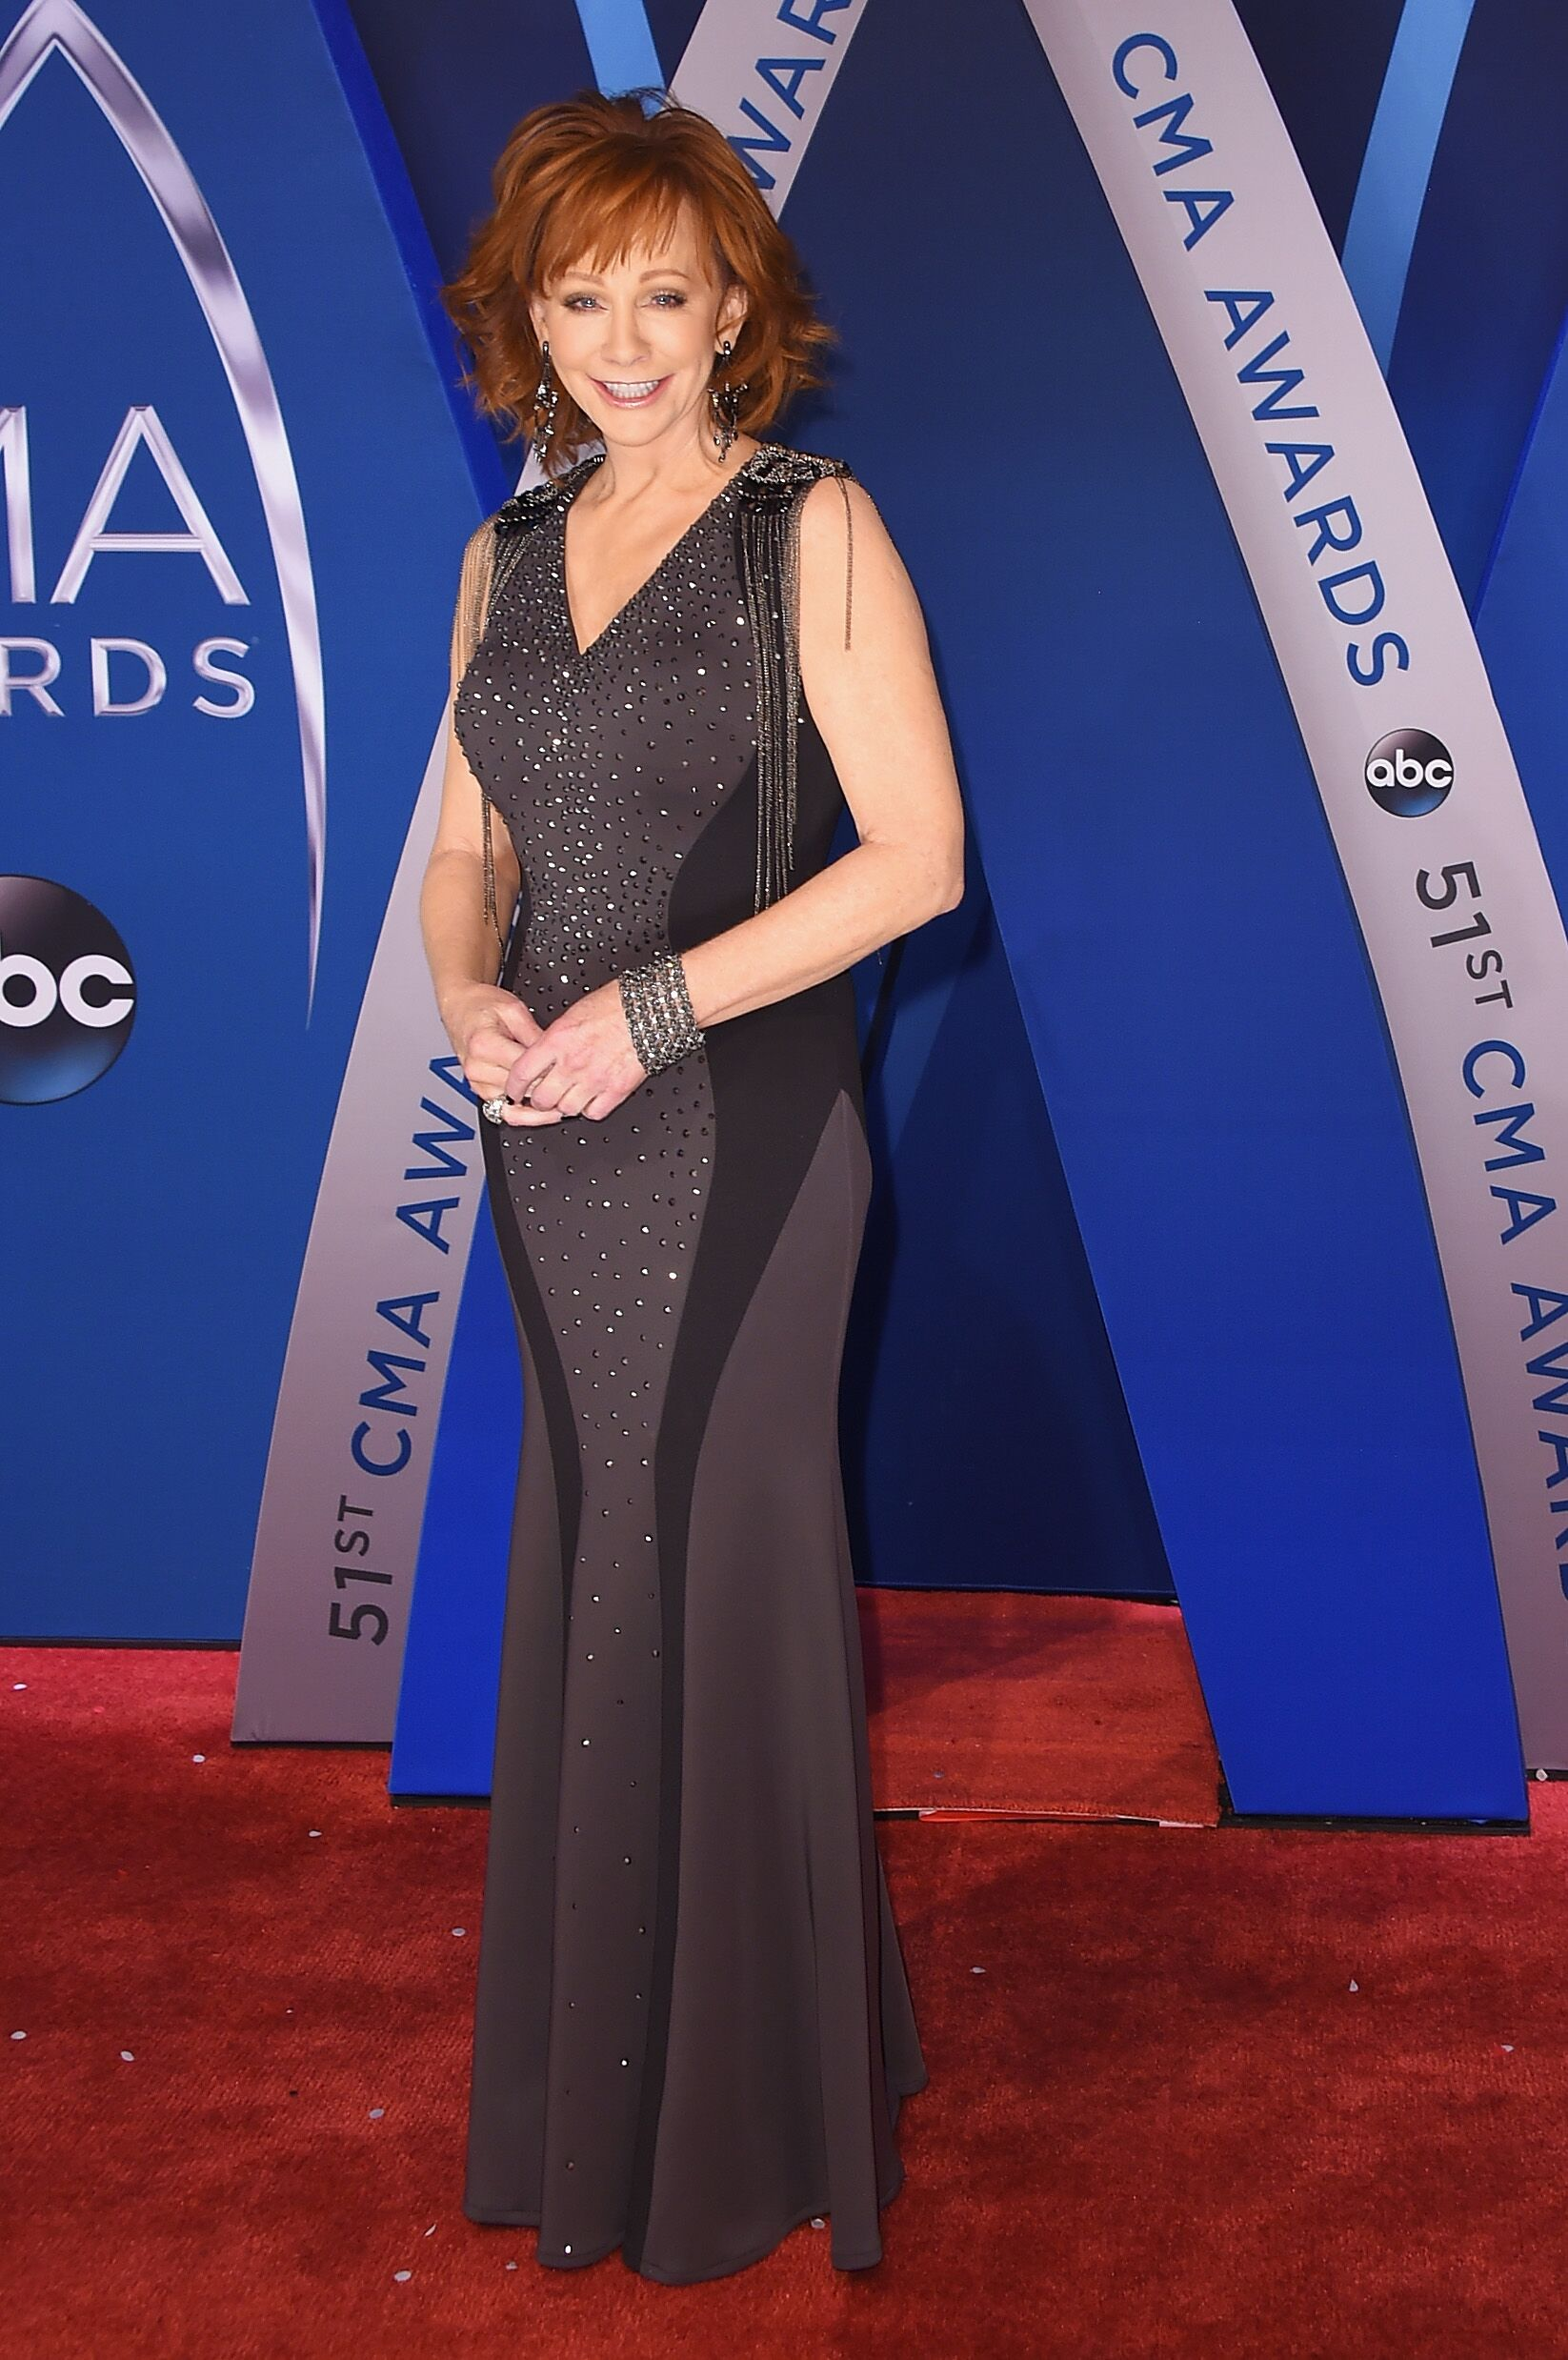 ) Singer-songwriter Reba McEntire attends the 51st annual CMA Awards at the Bridgestone Arena | Getty Images